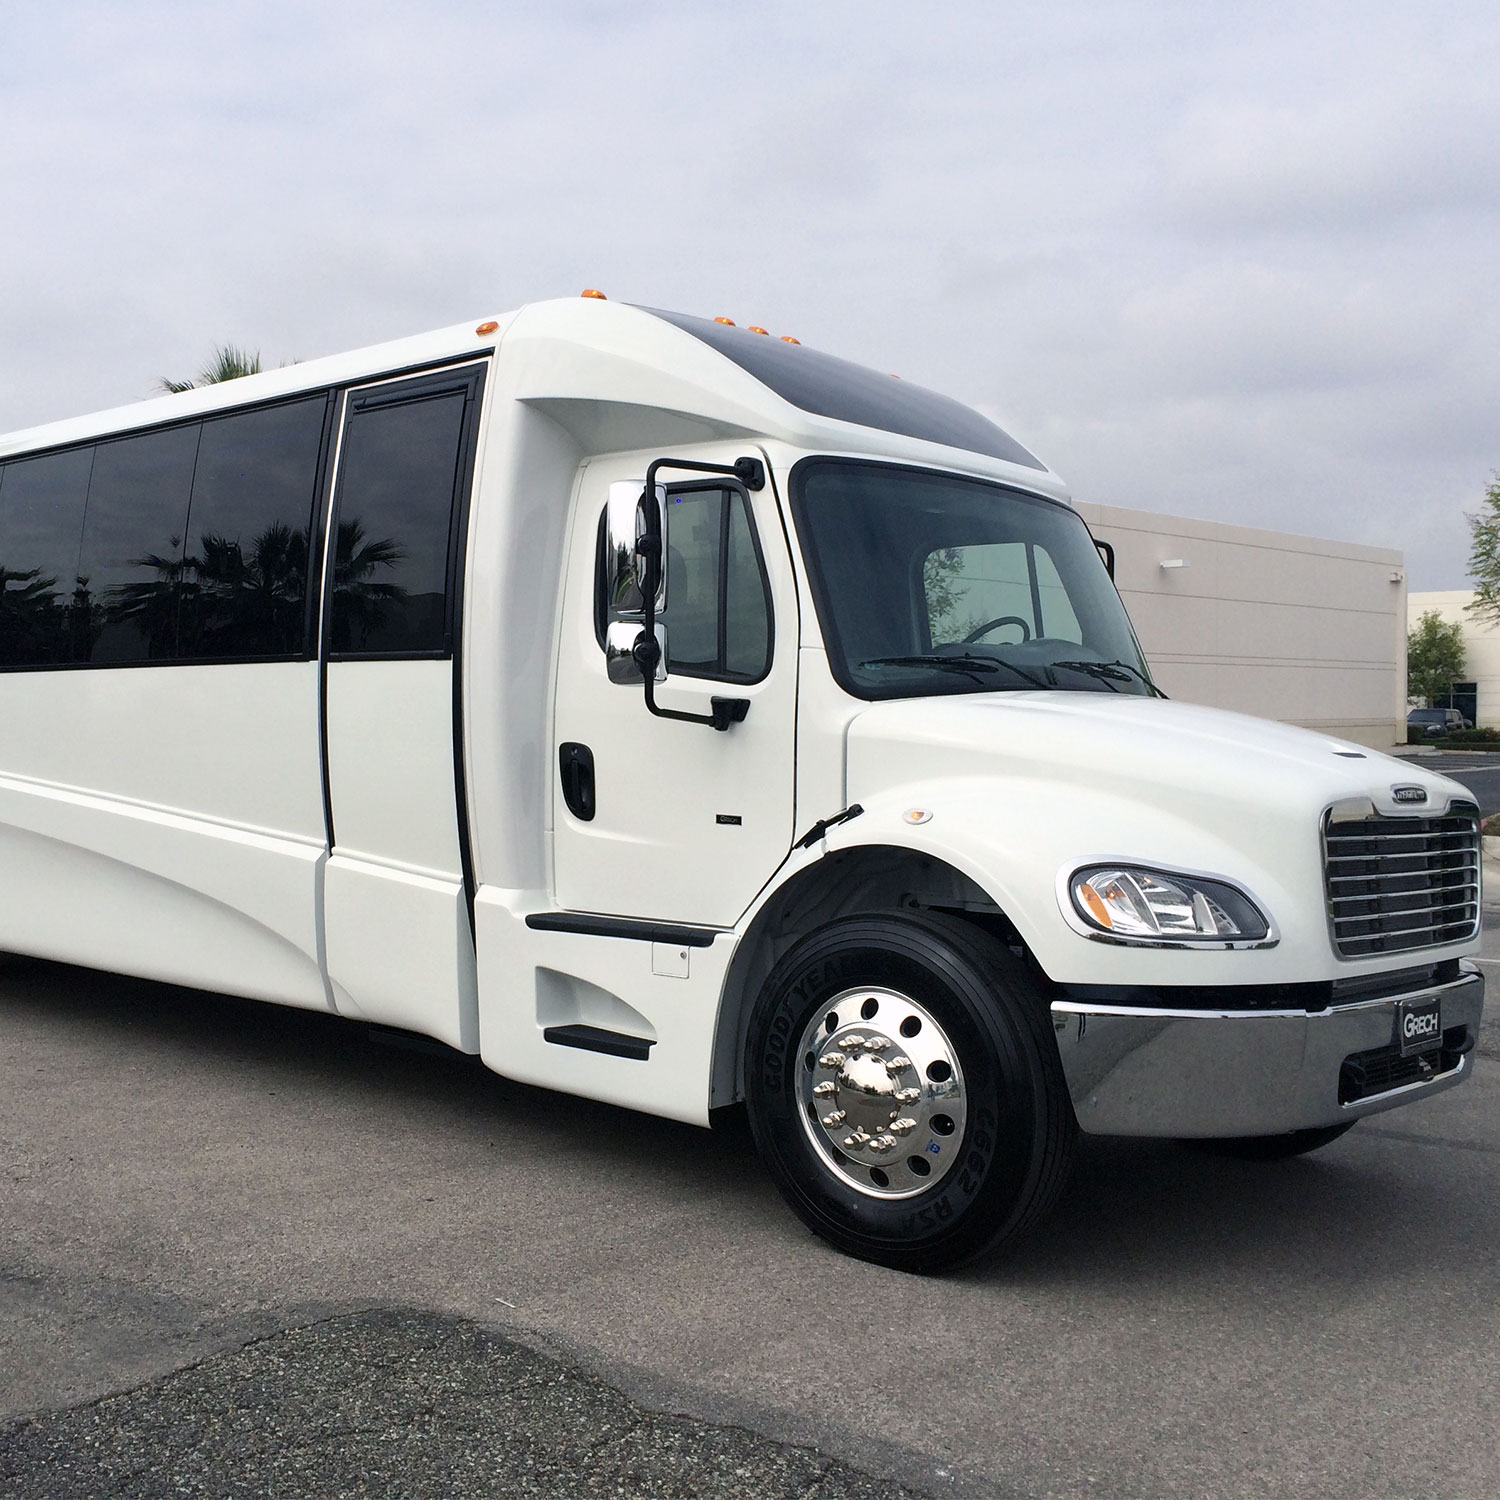 Grech Mega Party Bus rental price